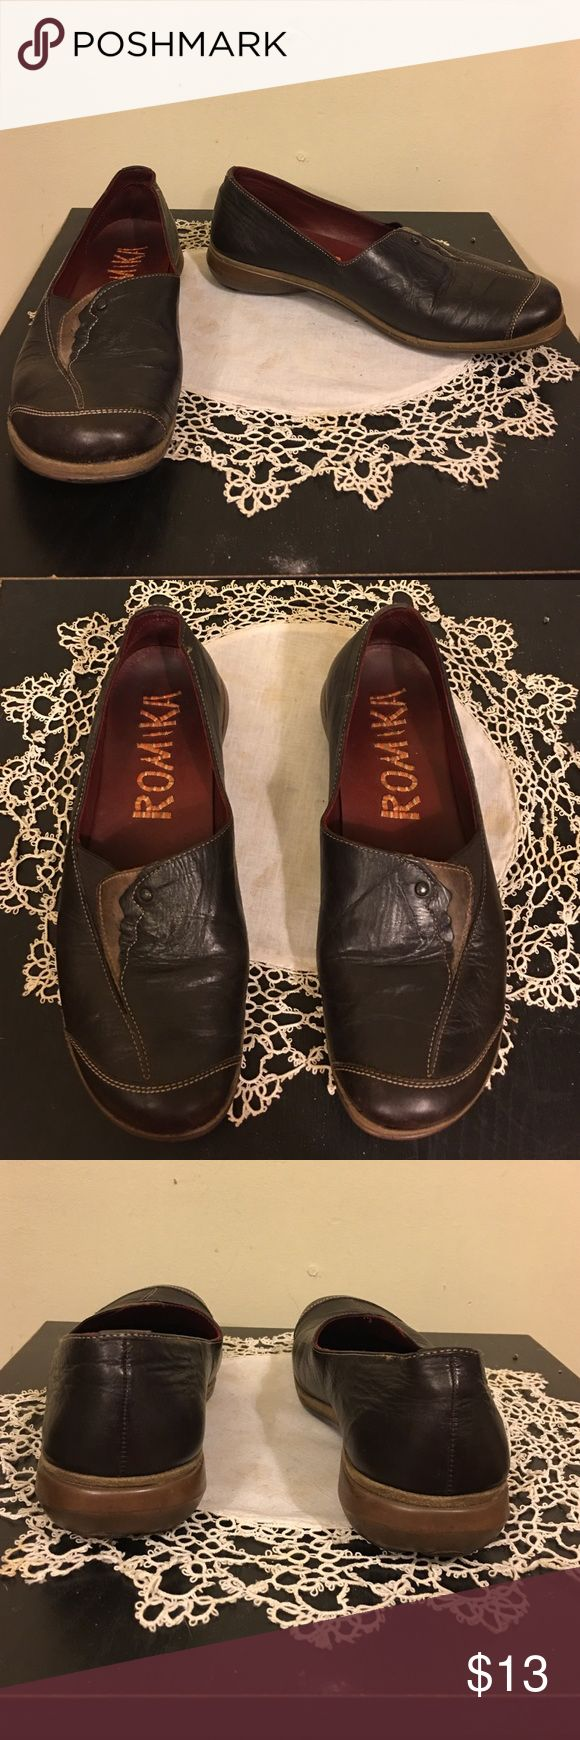 Size 9 Romika loafers Size 9 Romika loafers Romika Shoes Flats & Loafers